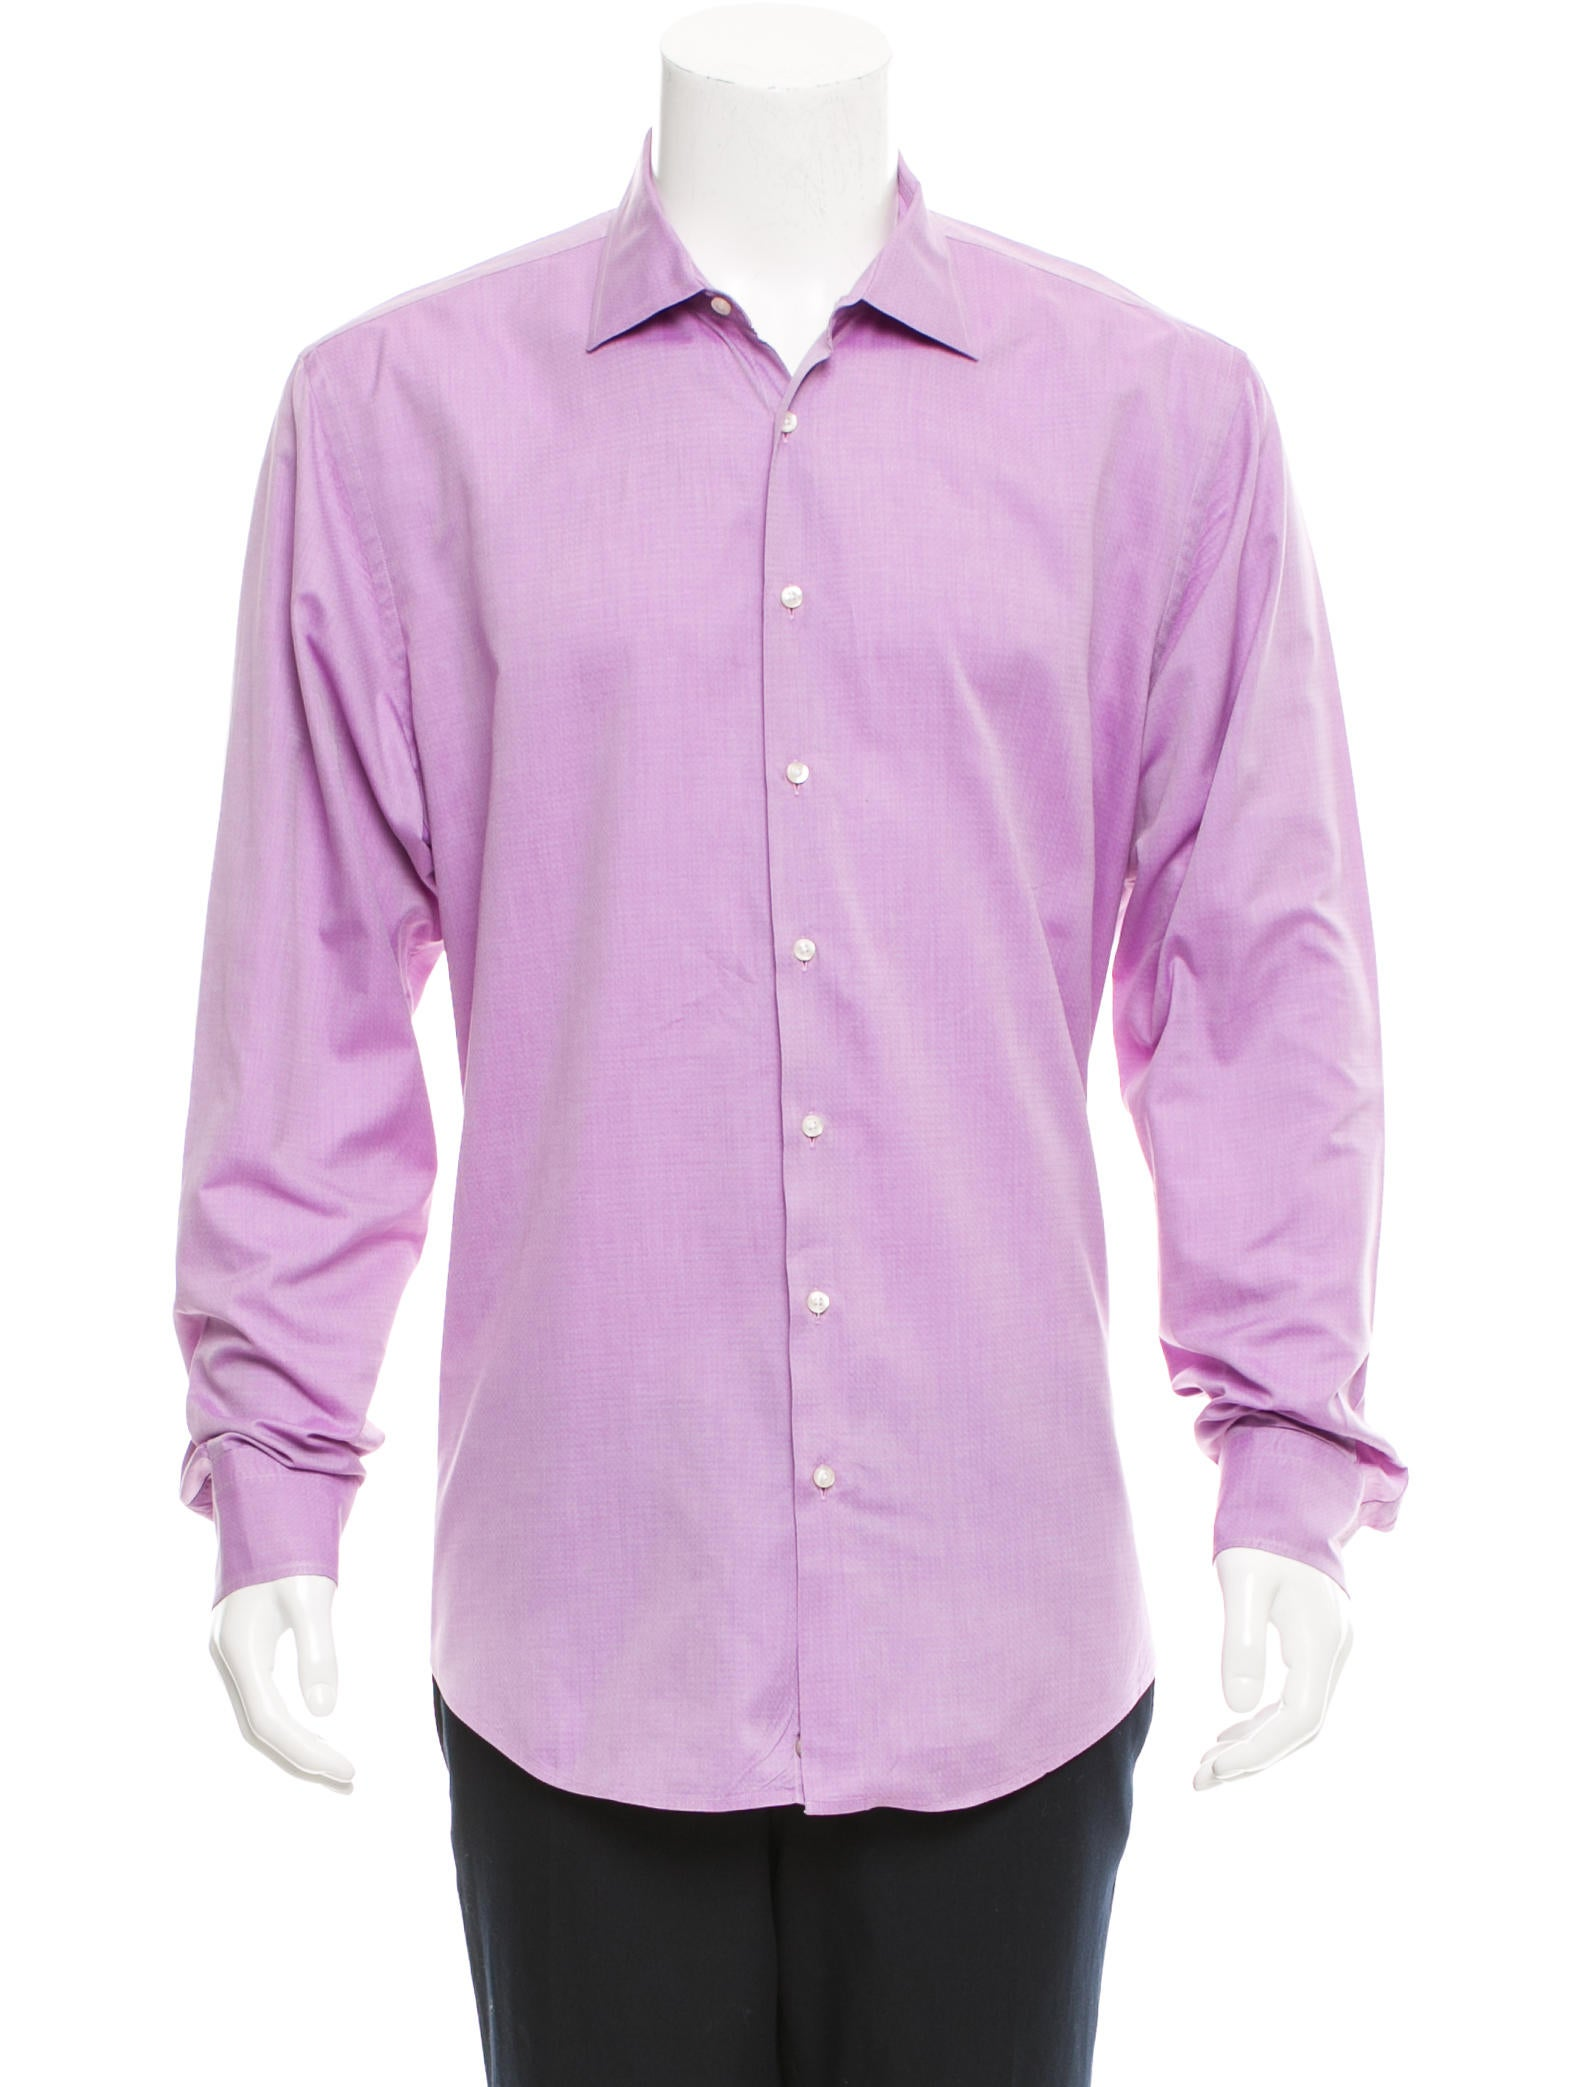 Etro long sleeve button up shirt clothing etr43366 for Cool long sleeve button up shirts